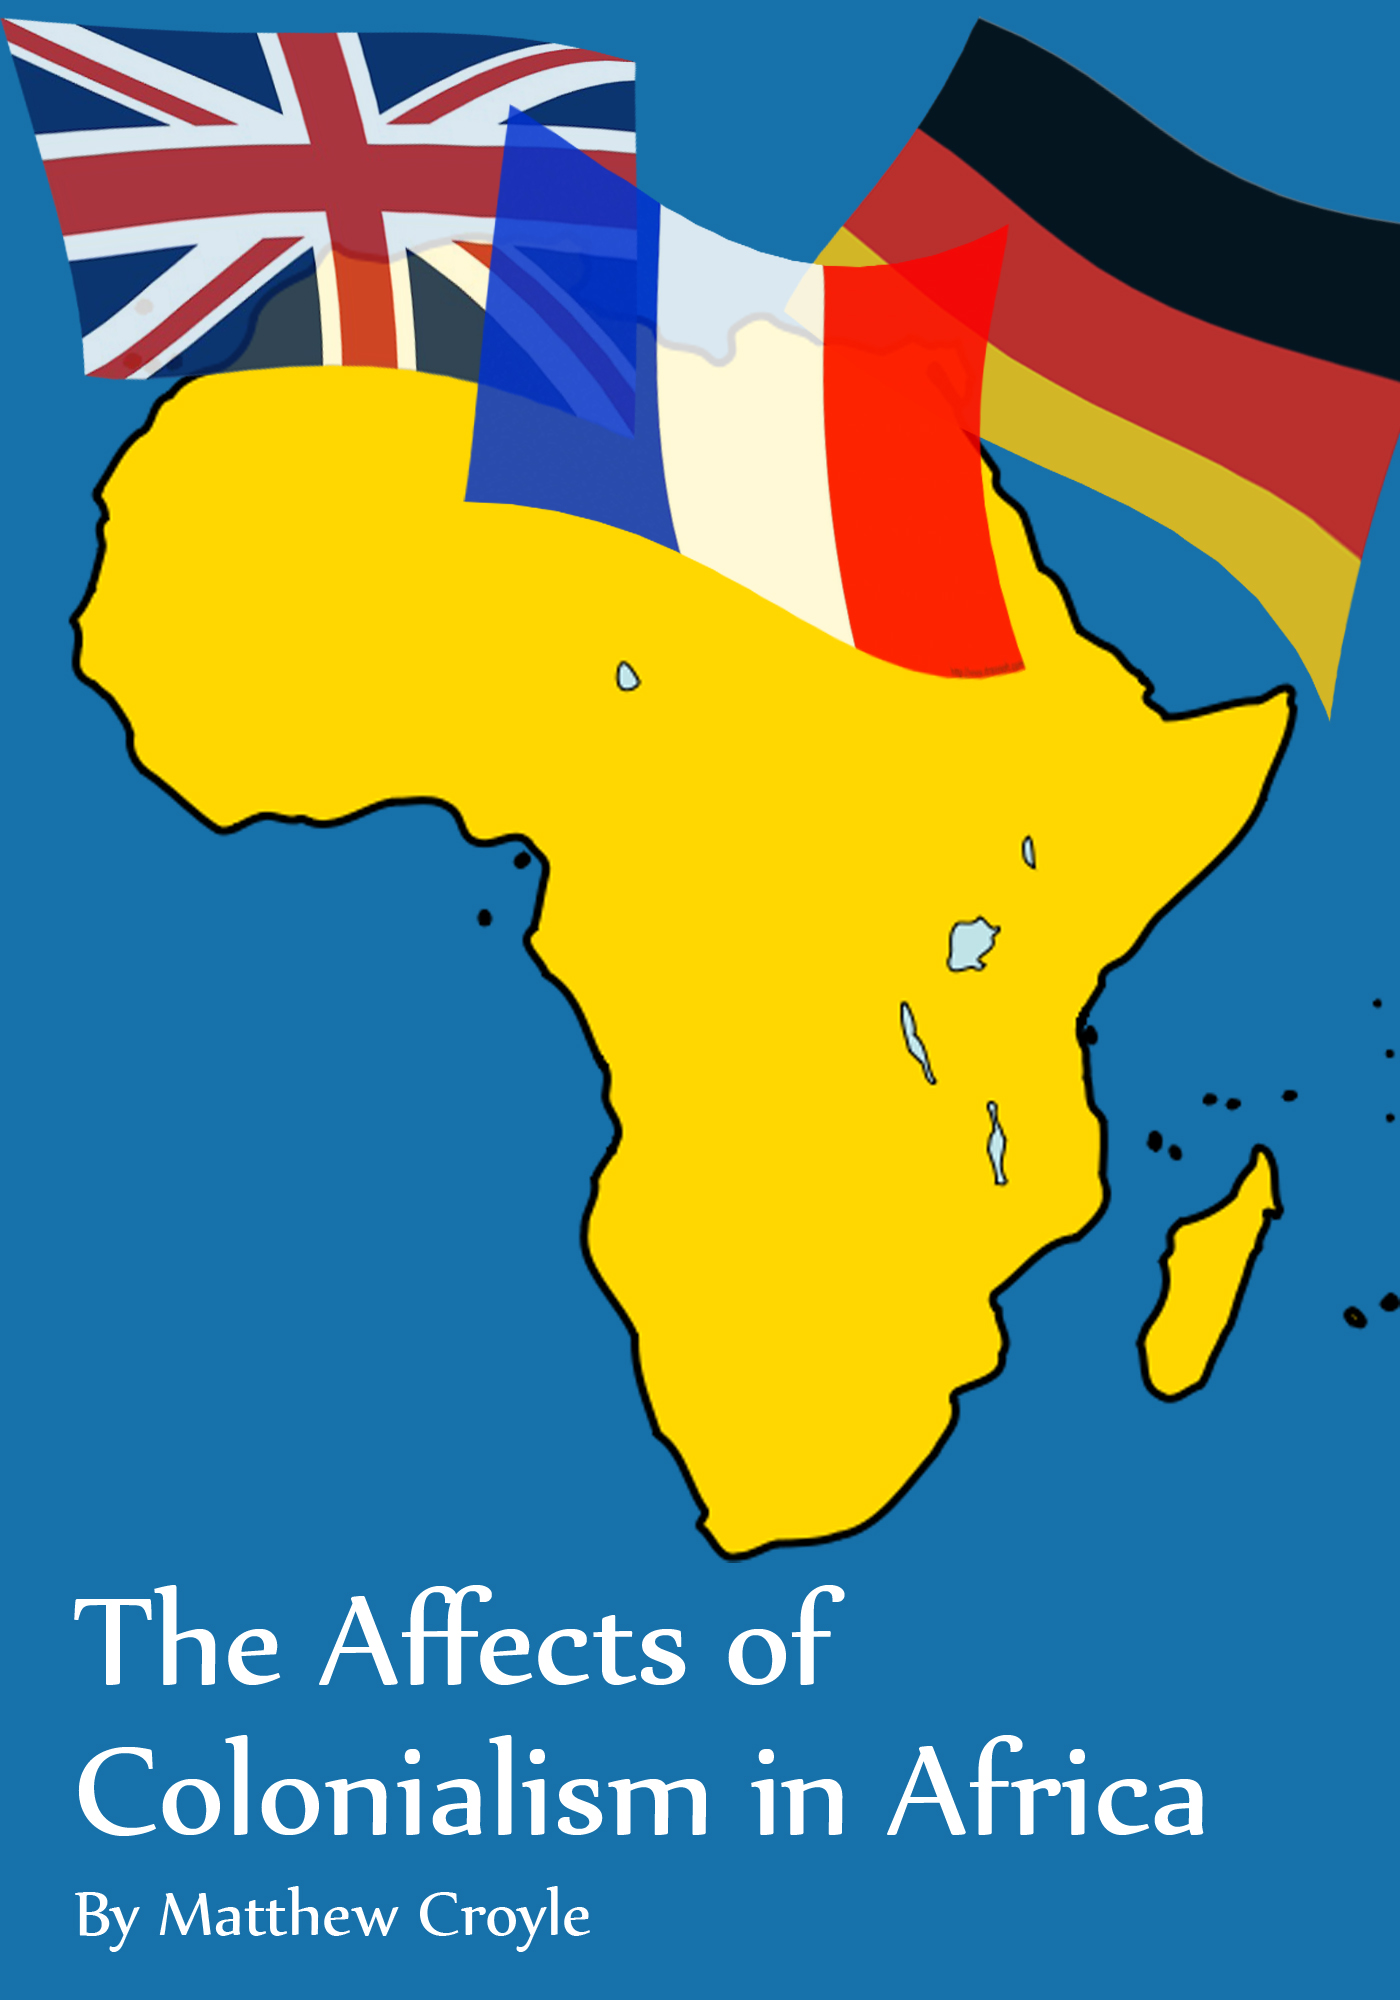 the cause and effect of the colonialist rules